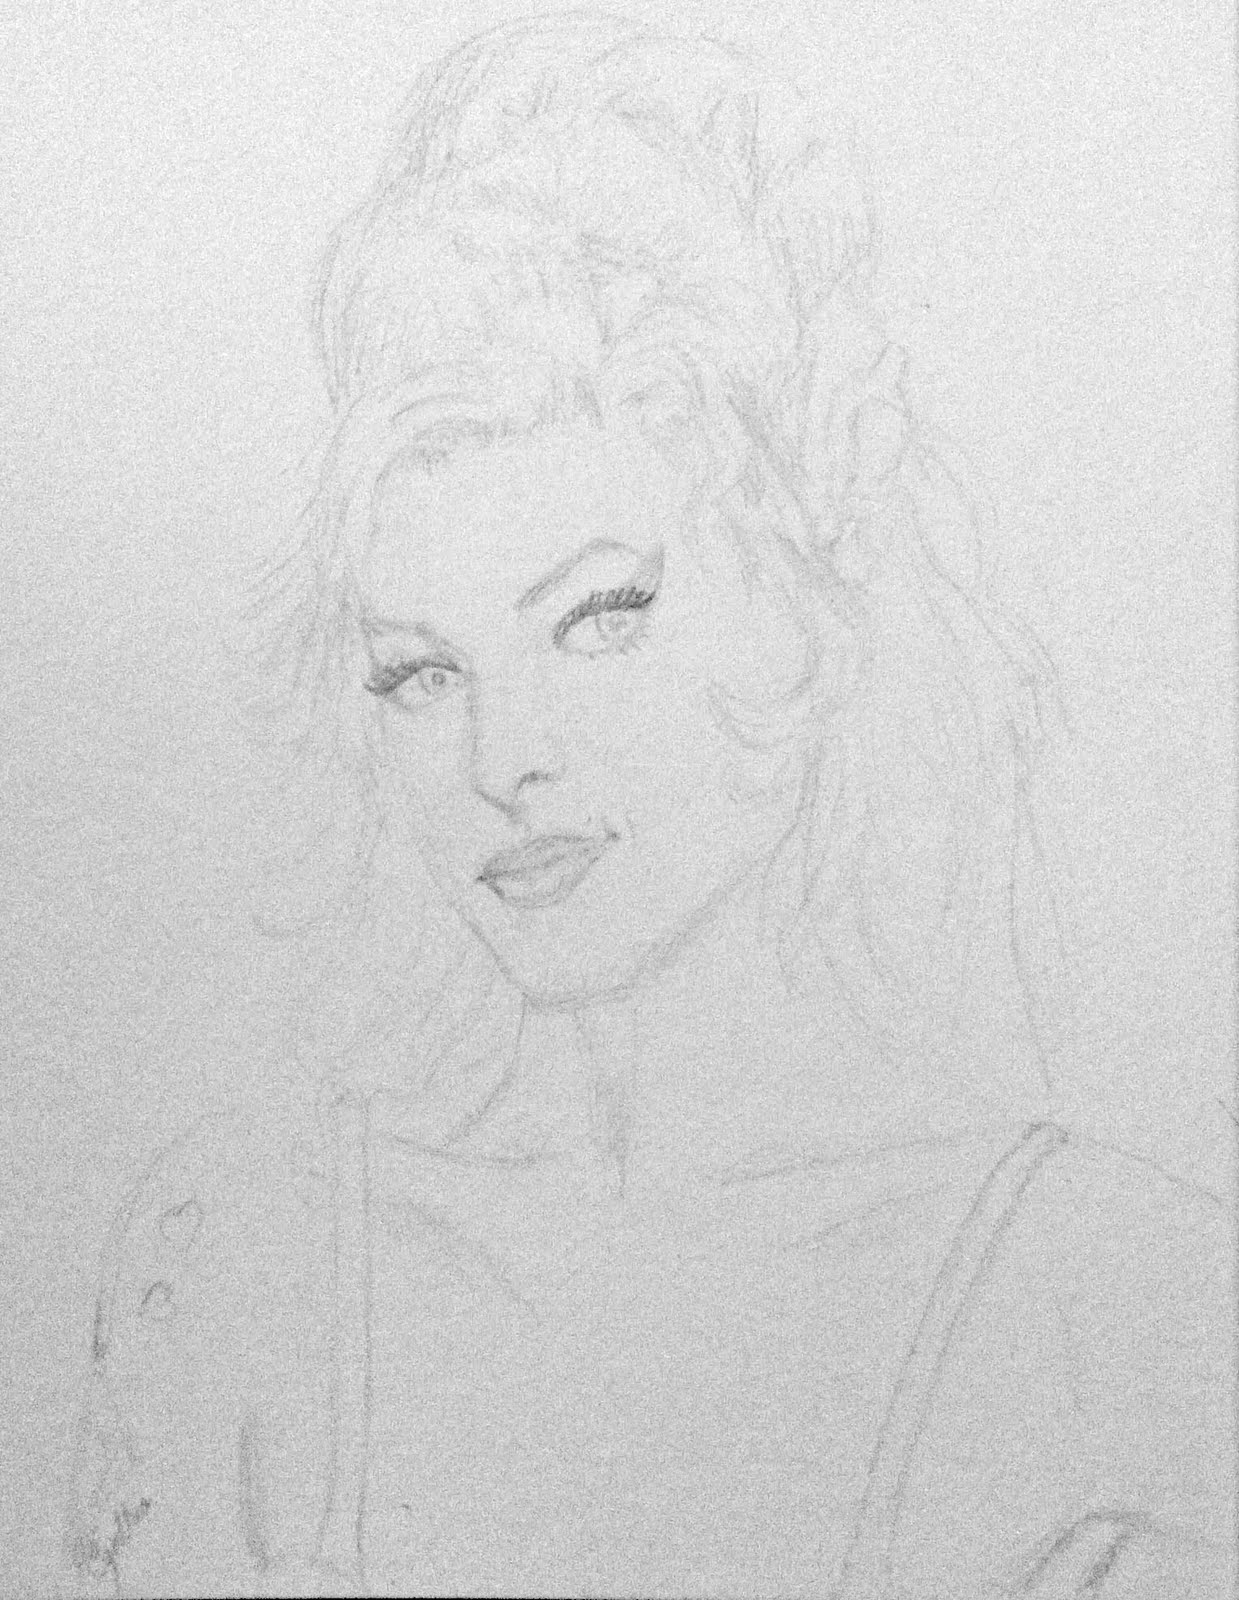 R.I.P. Amy Winehouse (work in progress)